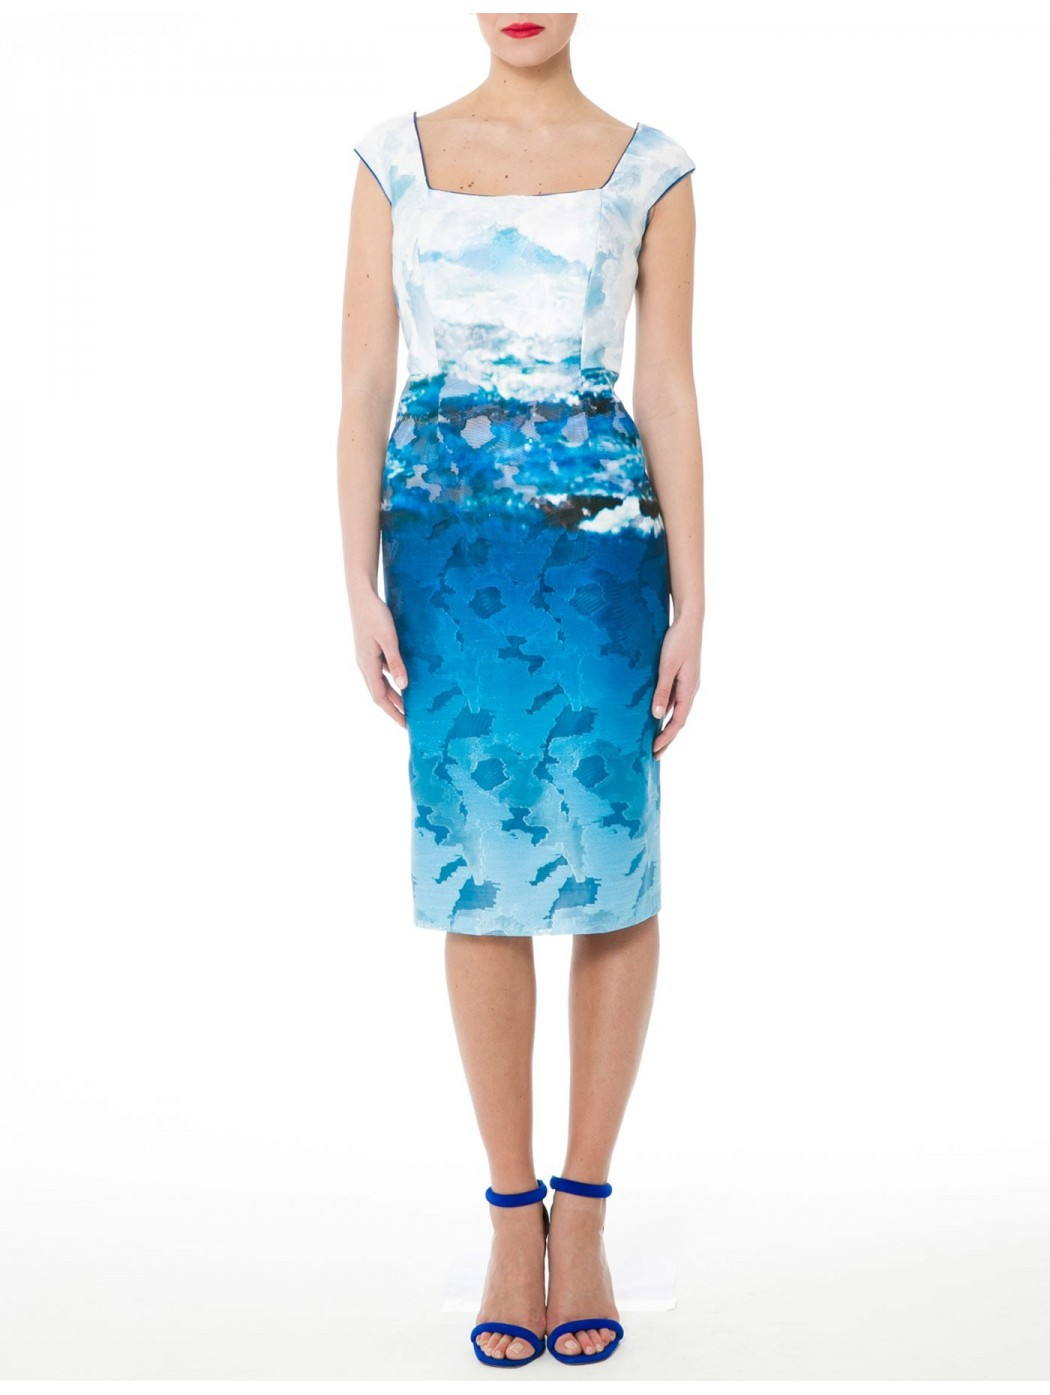 16242b62ad56 ... Sonia Pena Couture white and blue dress suit